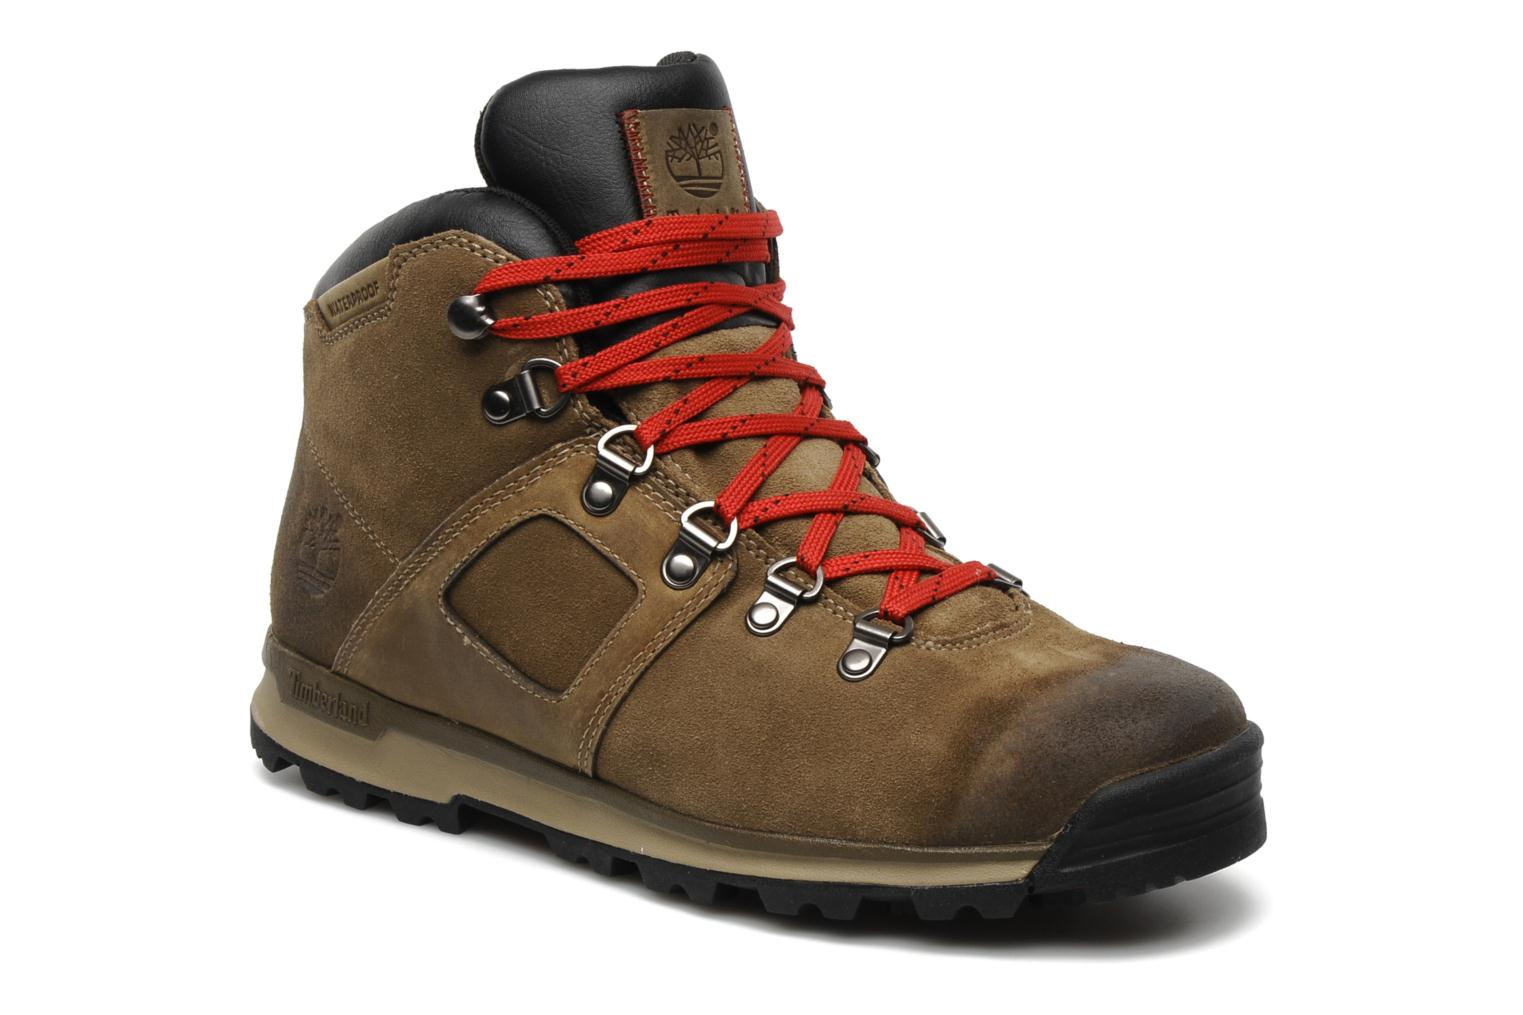 Chaussures Timberland Bousculade Gt Pour Les Hommes - Brown 0Fvr8wl